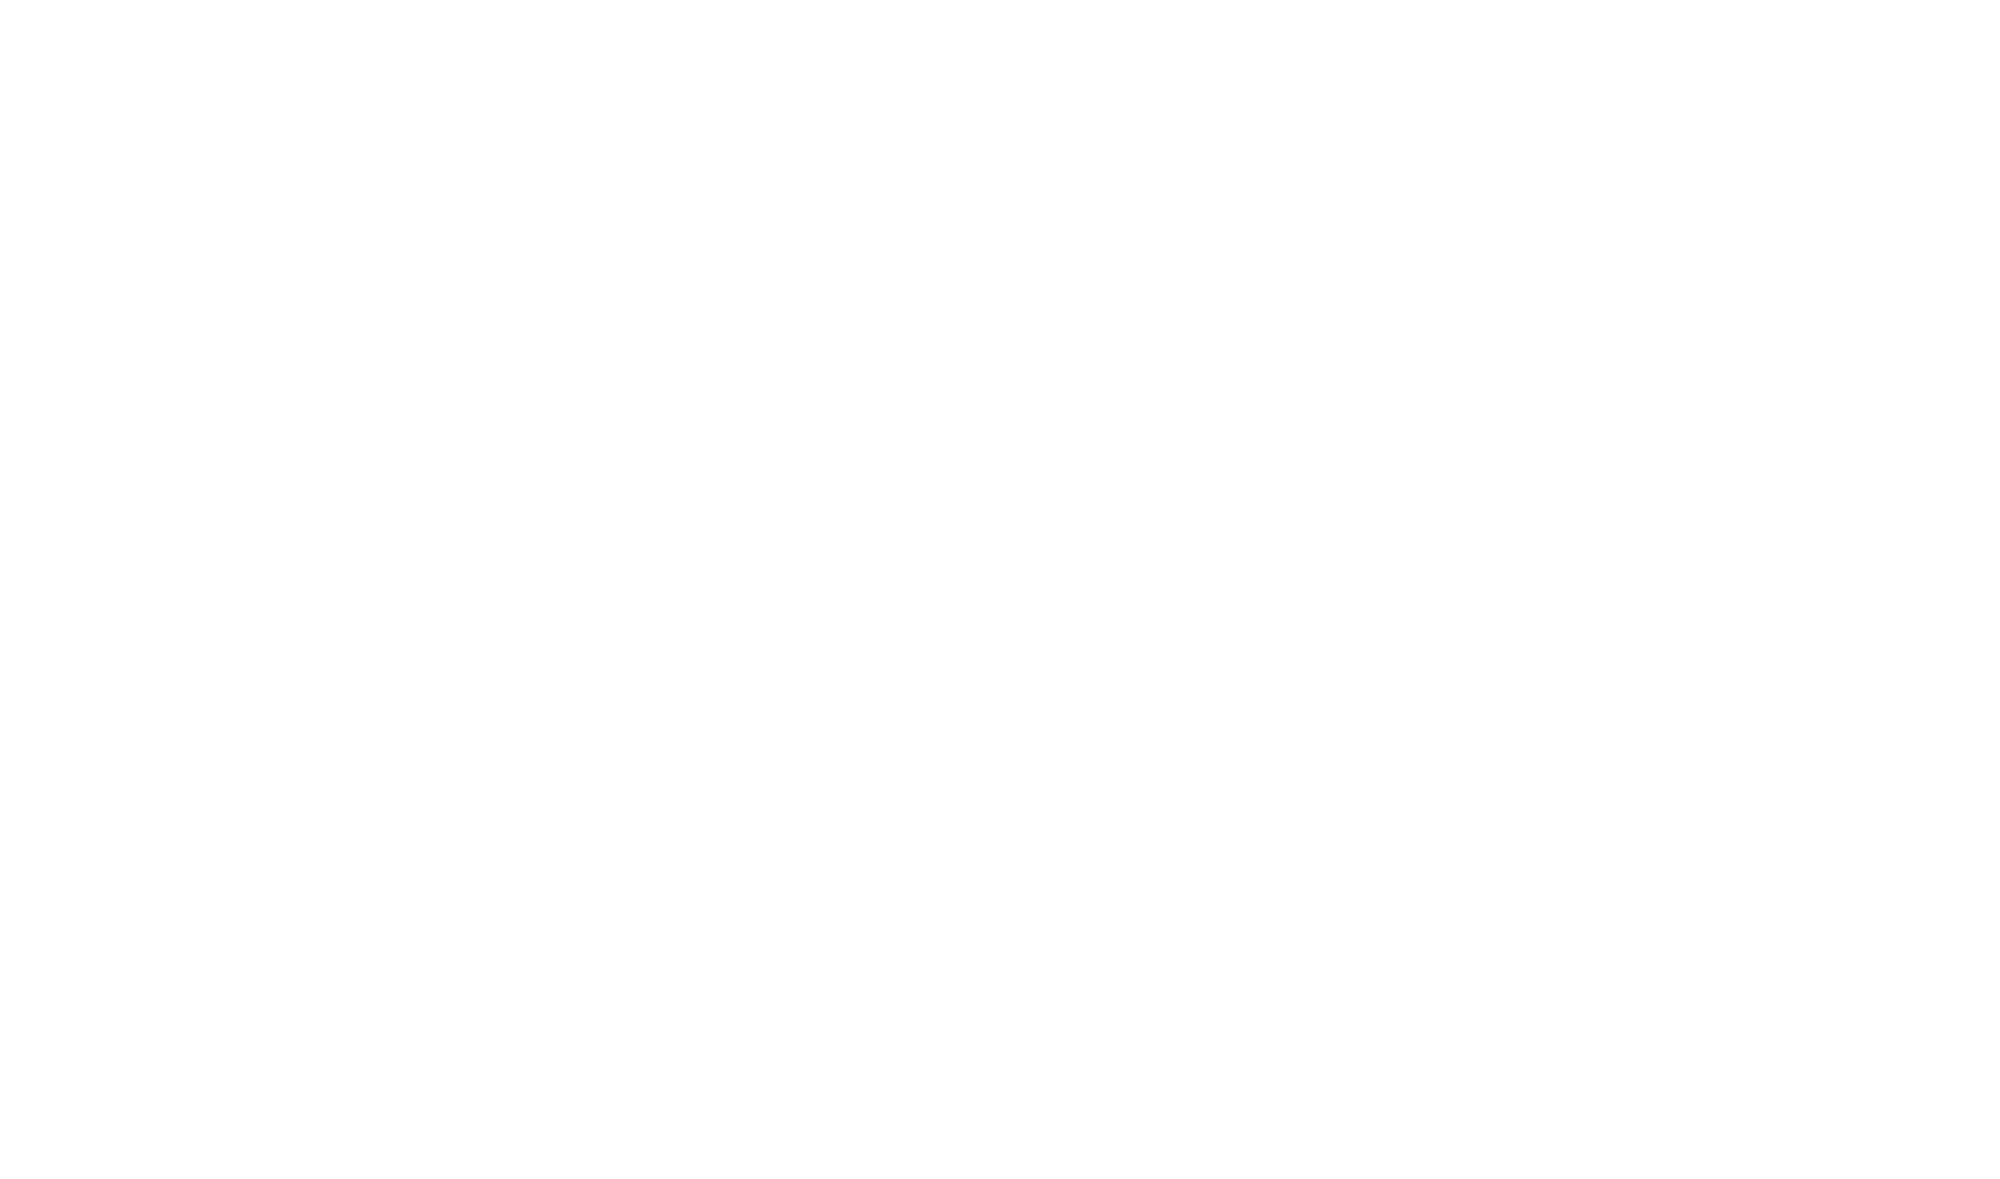 lopolopo-logo-black.png